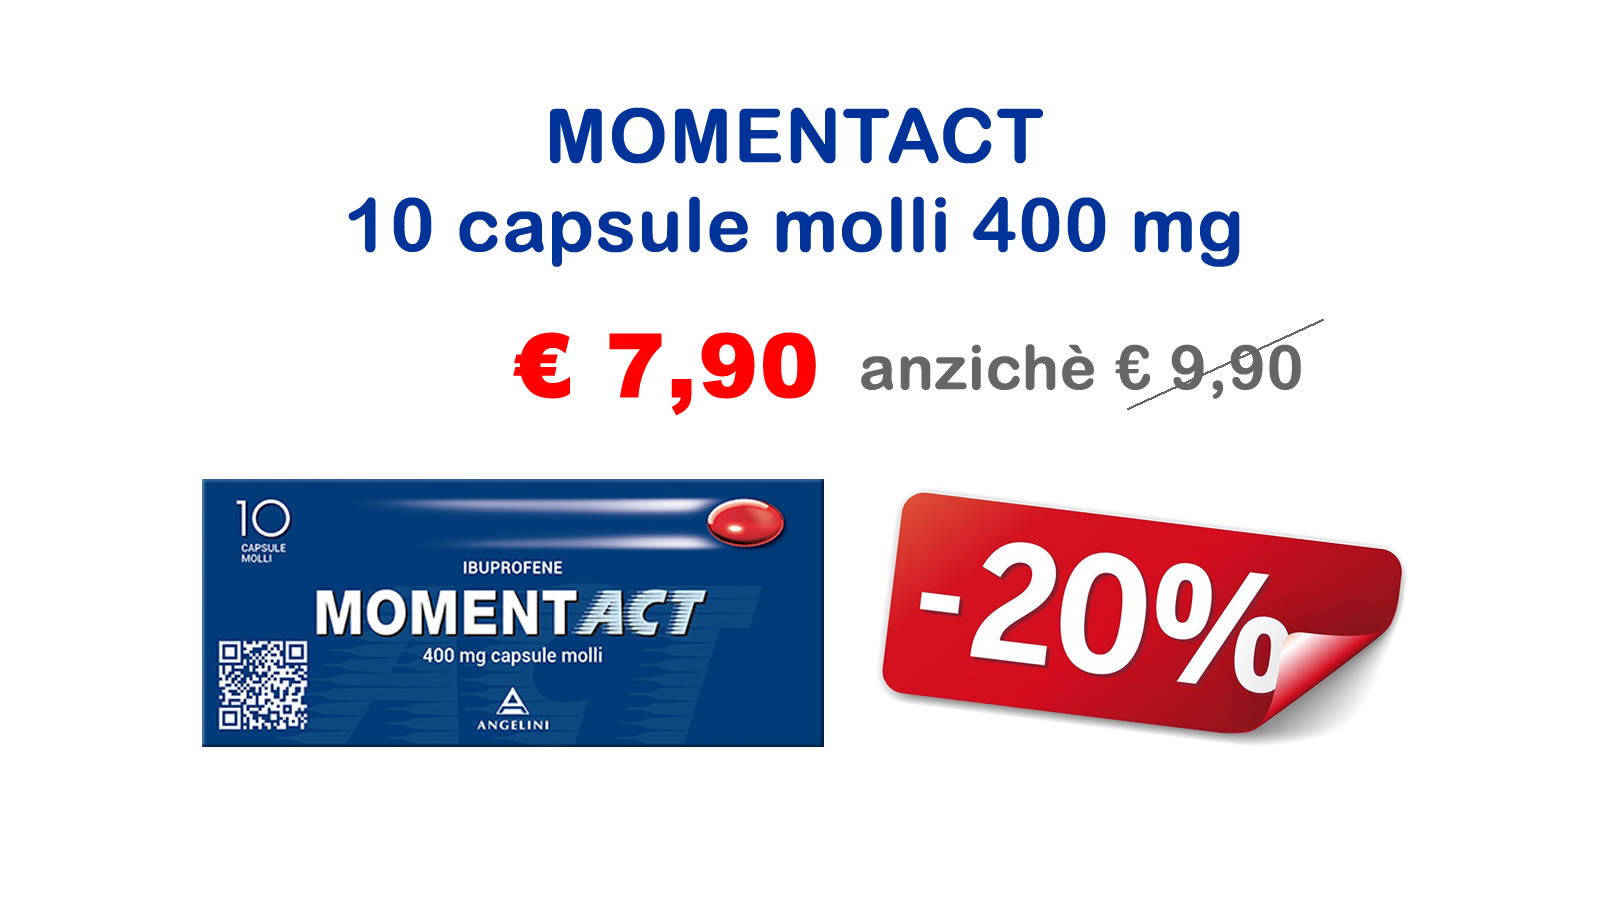 Momentact-cps-molli